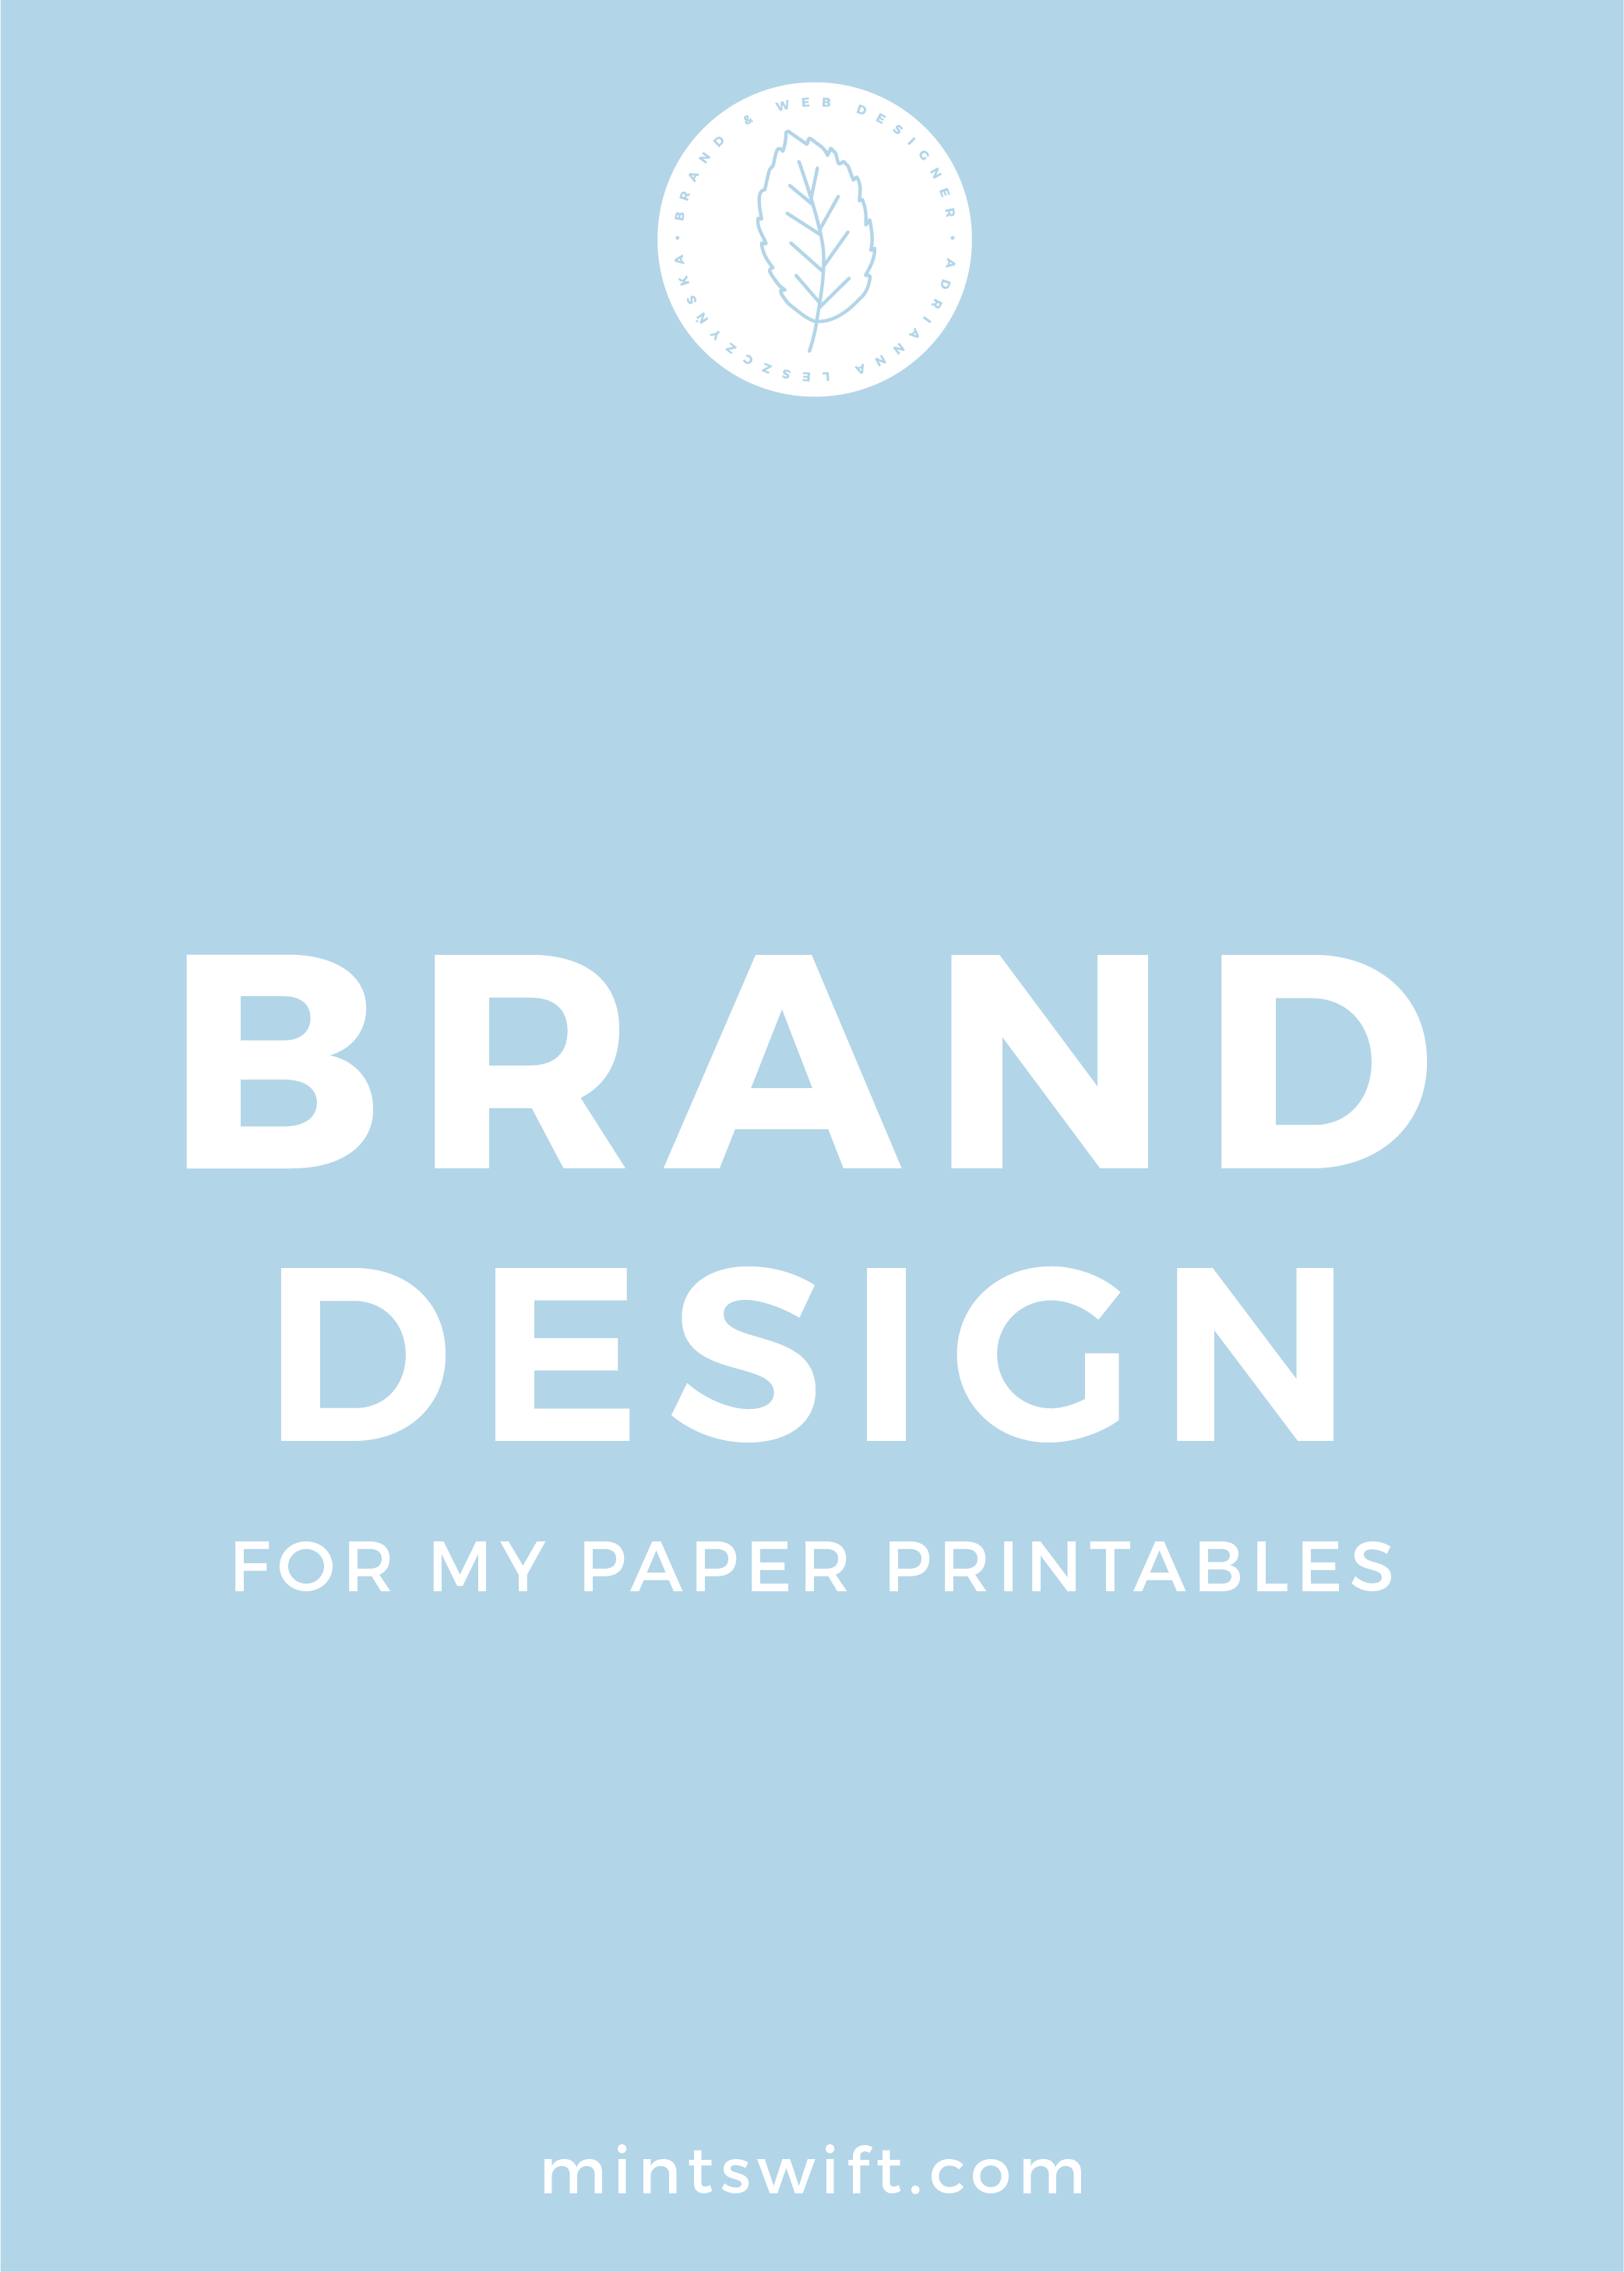 Brand Design for My Paper Printables